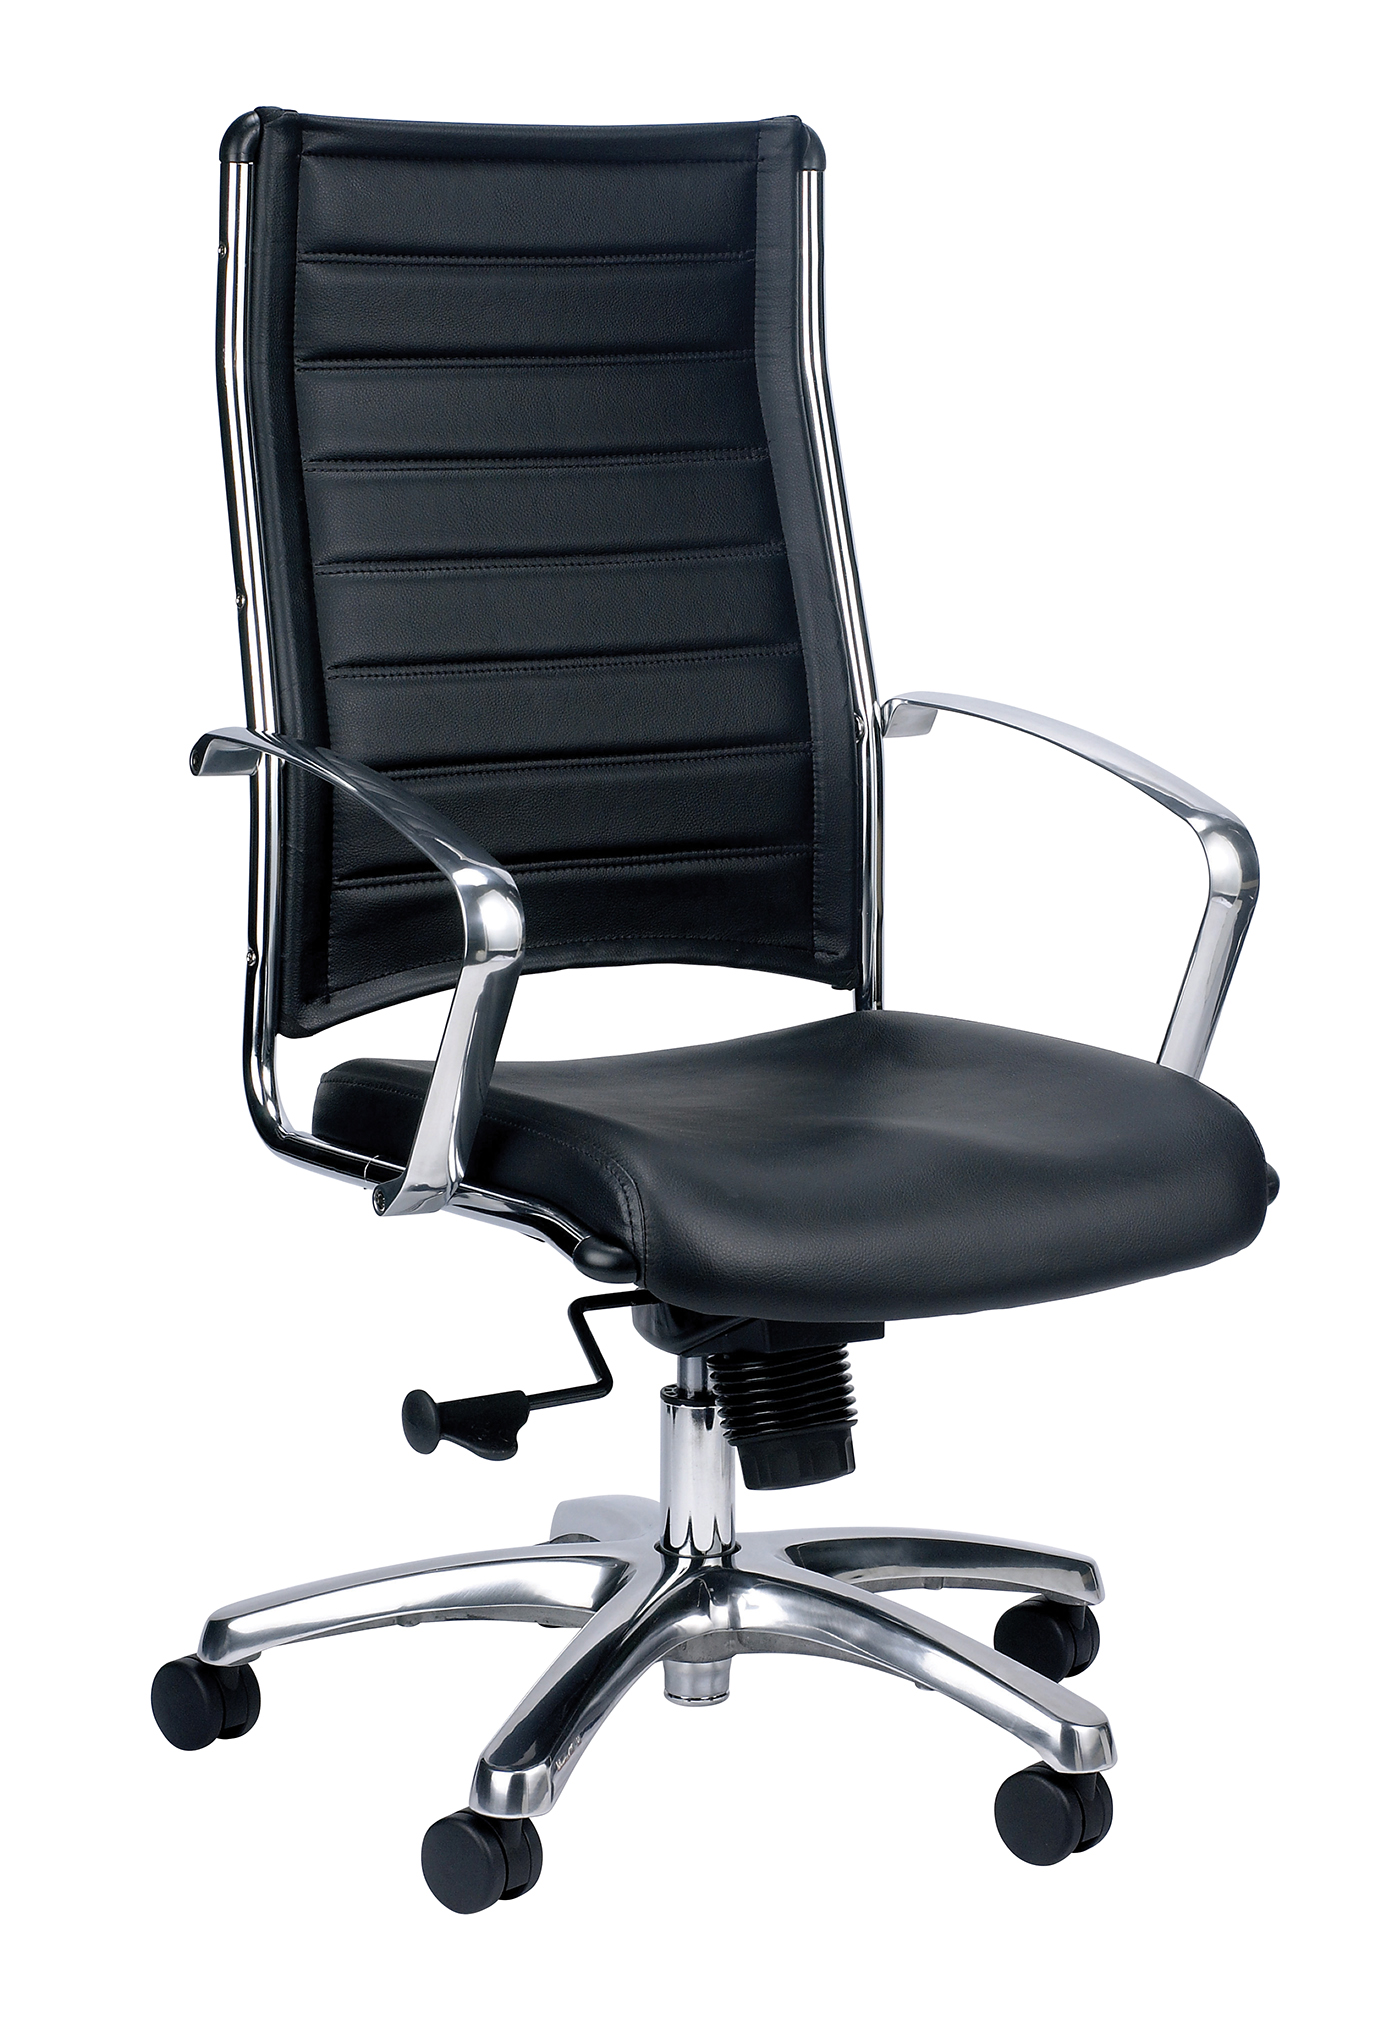 Eurotech Europa leather high back chair Black